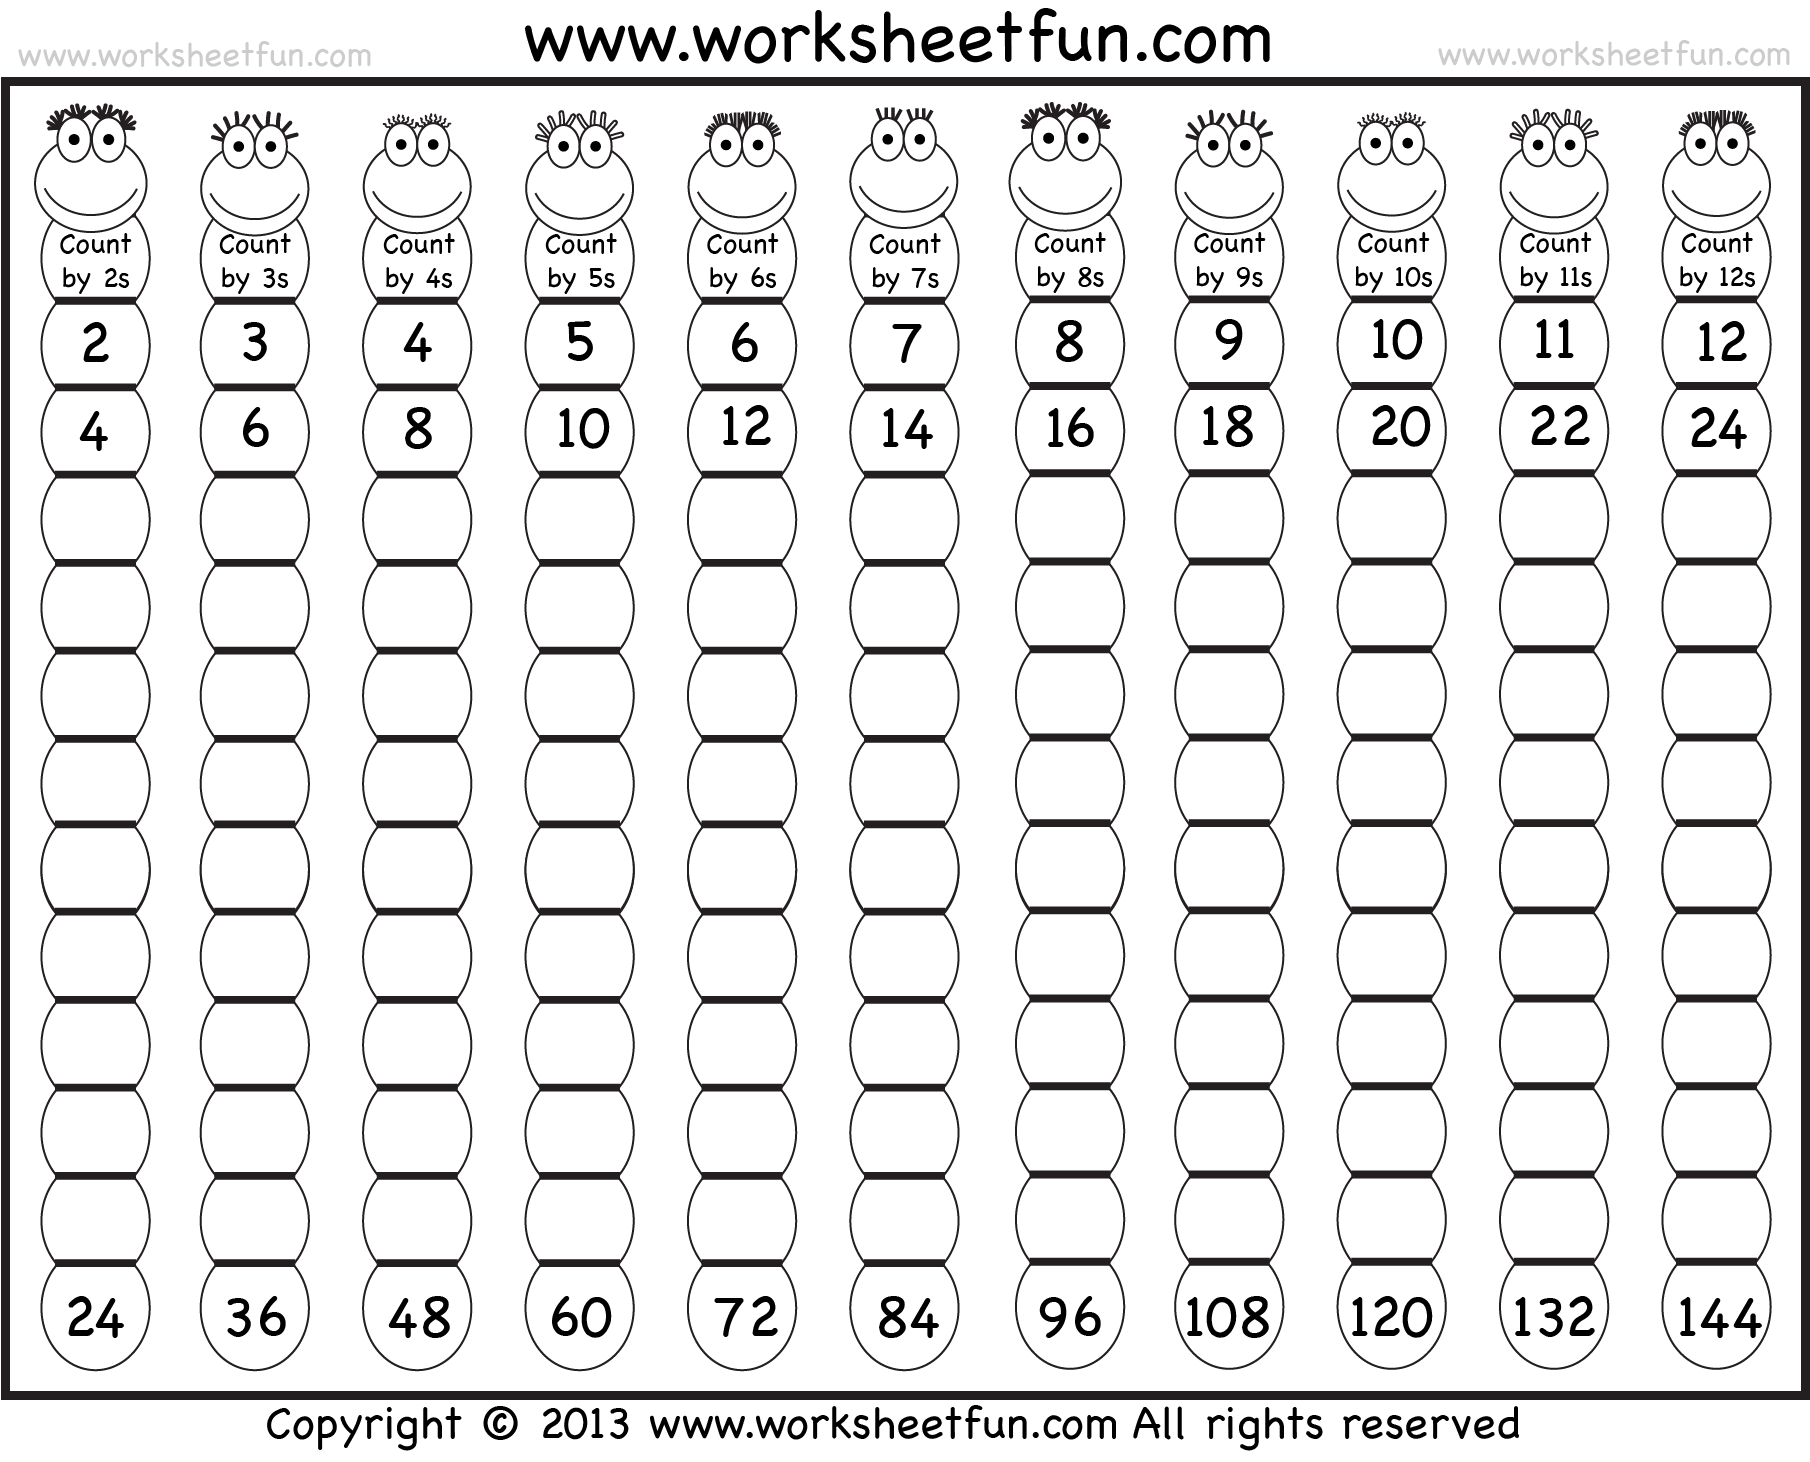 Worksheet 12 Times 8 Worksheet Fun Worksheet Study Site